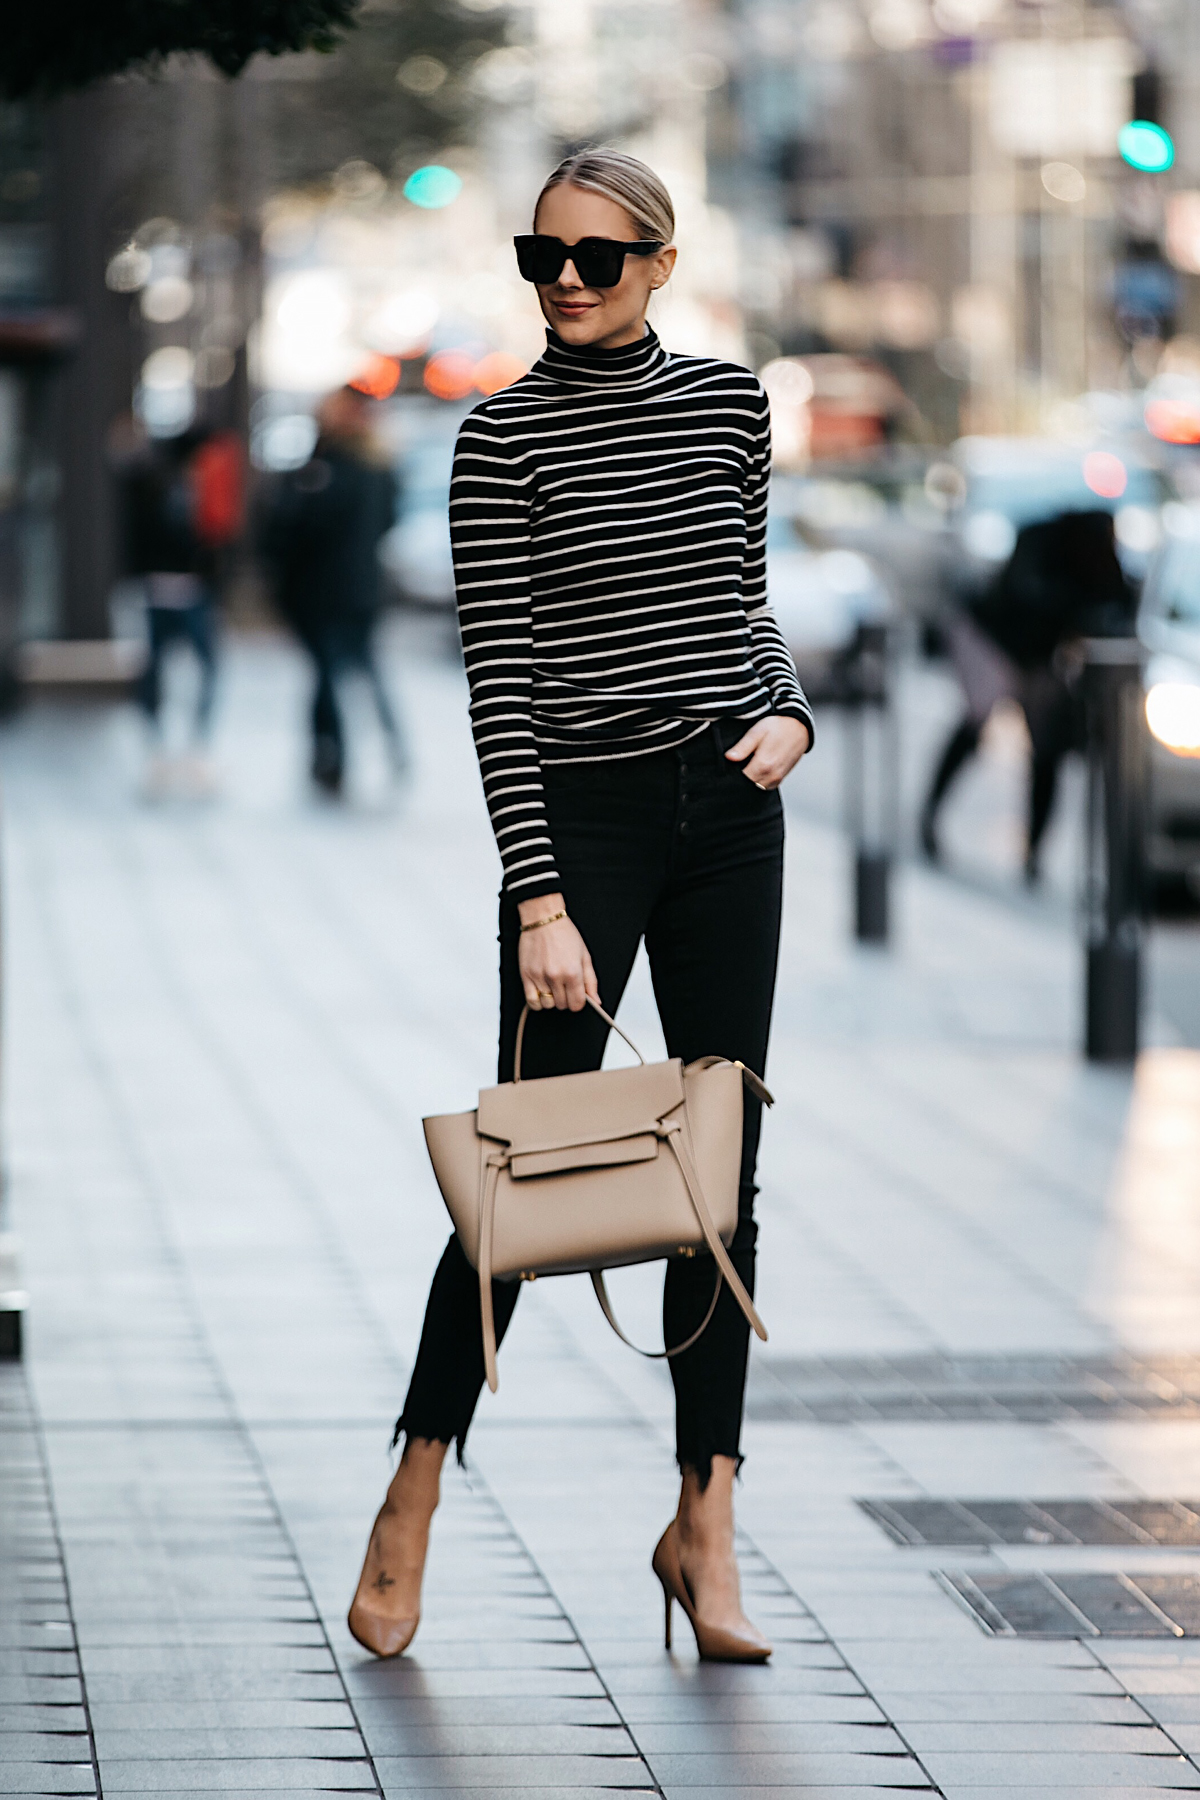 44d92f8b792a Blonde Woman Wearing Nordstrom Black White Striped Turtleneck Sweater Black  Skinny Jeans Nude Pumps Outfit Celine